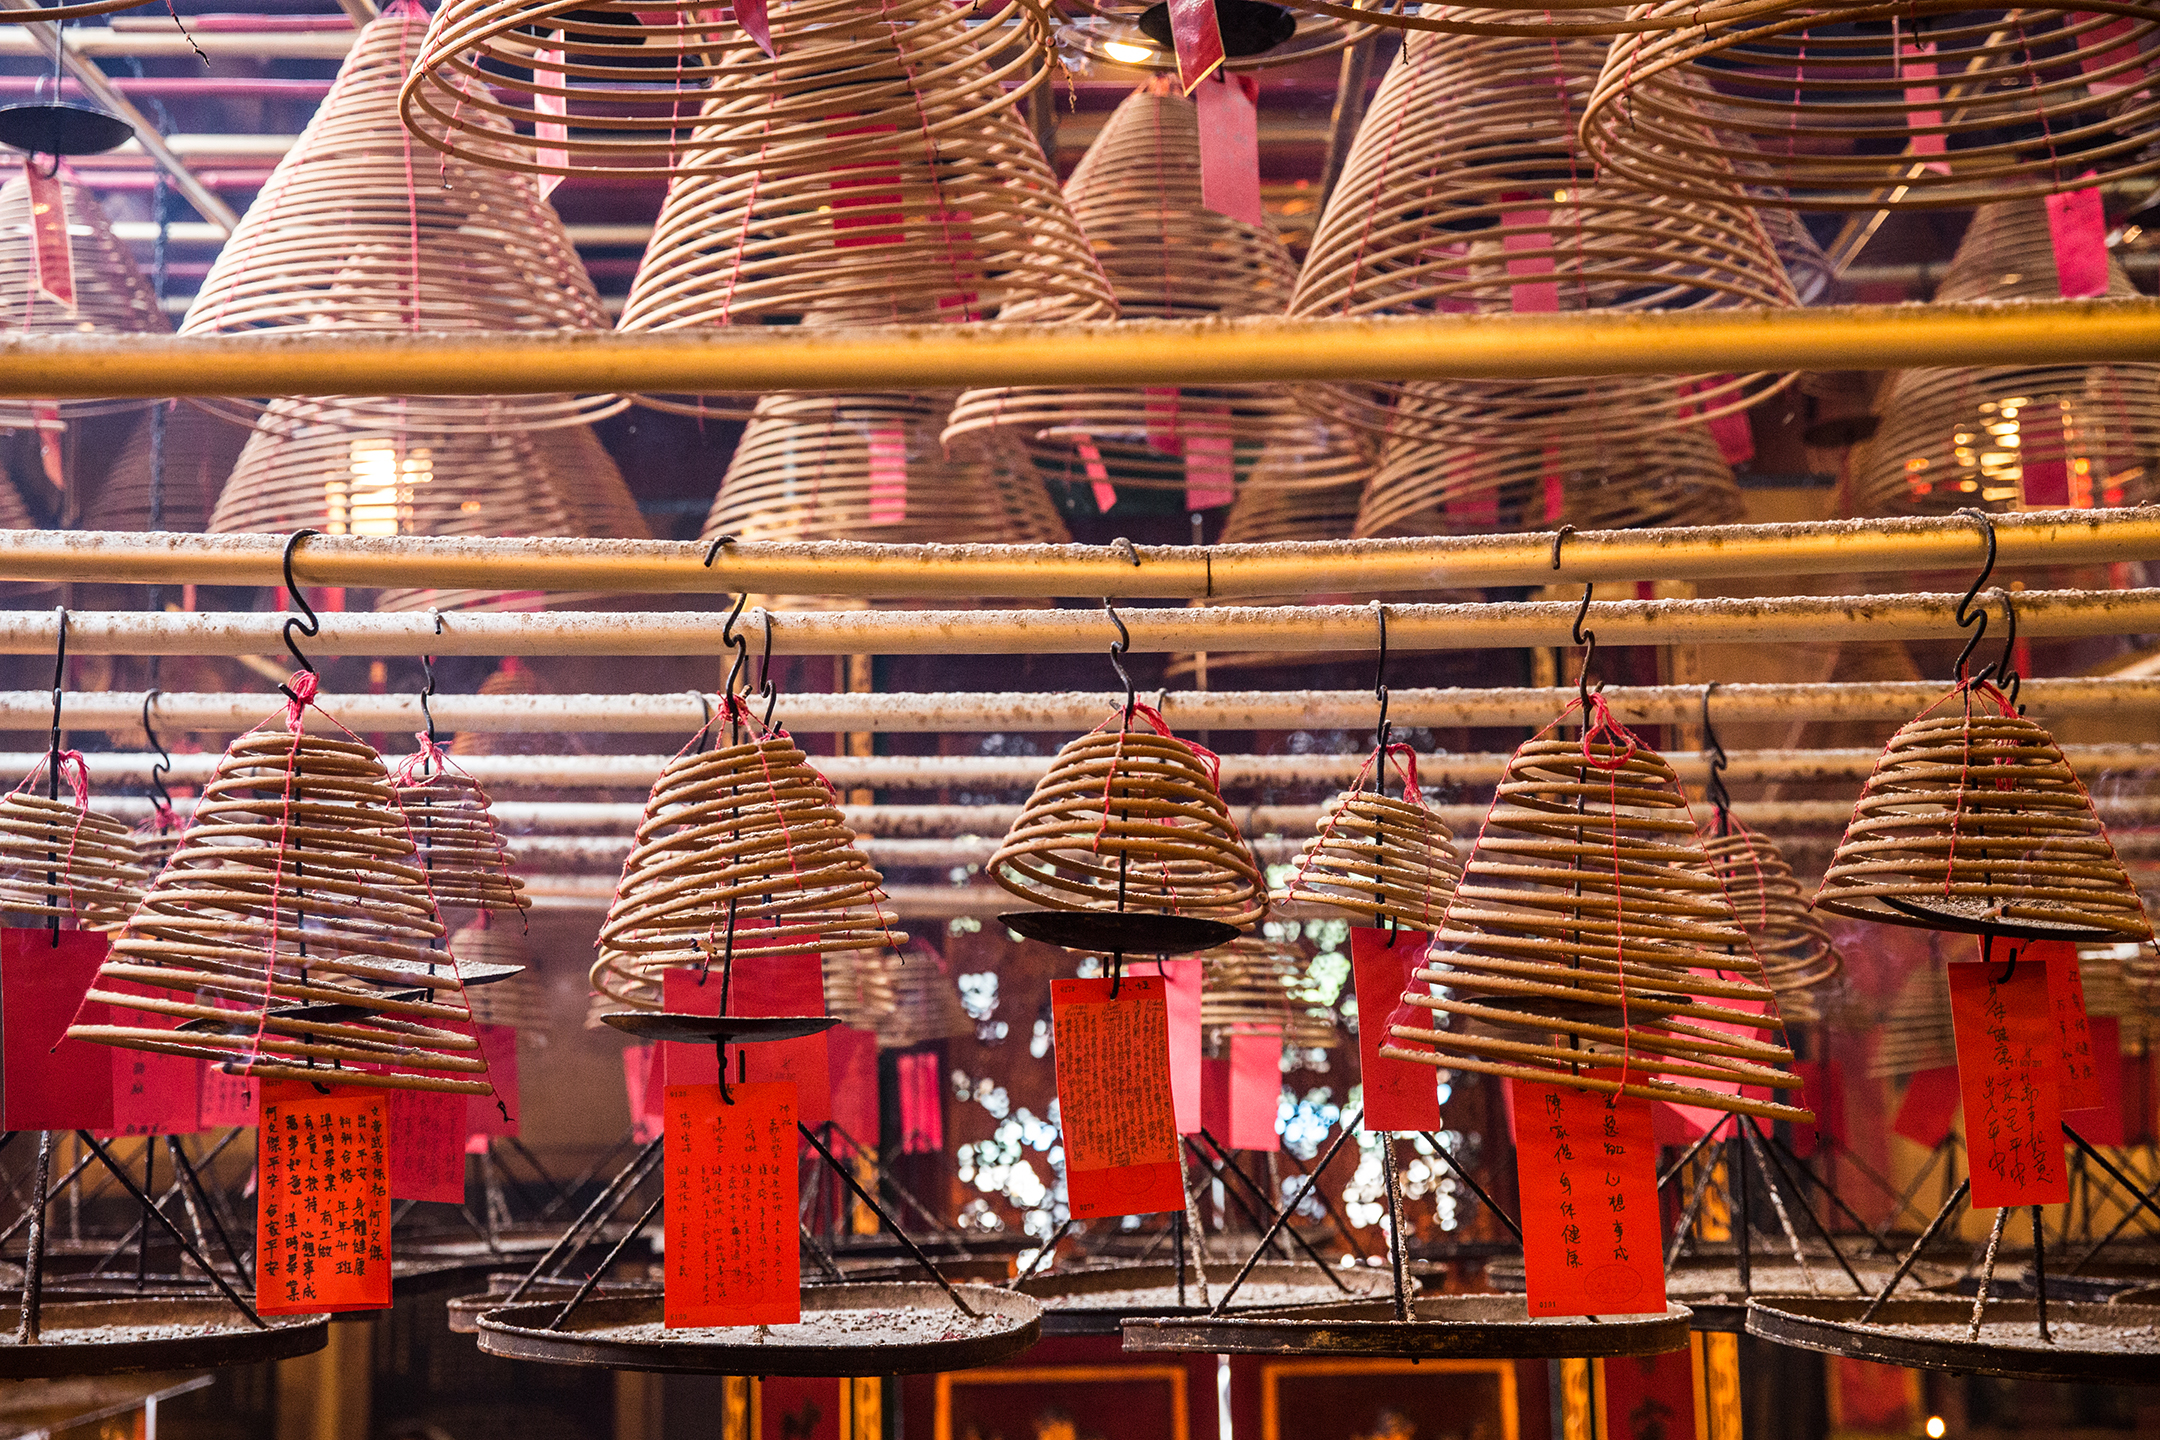 Incense coils at Man Mo Temple.